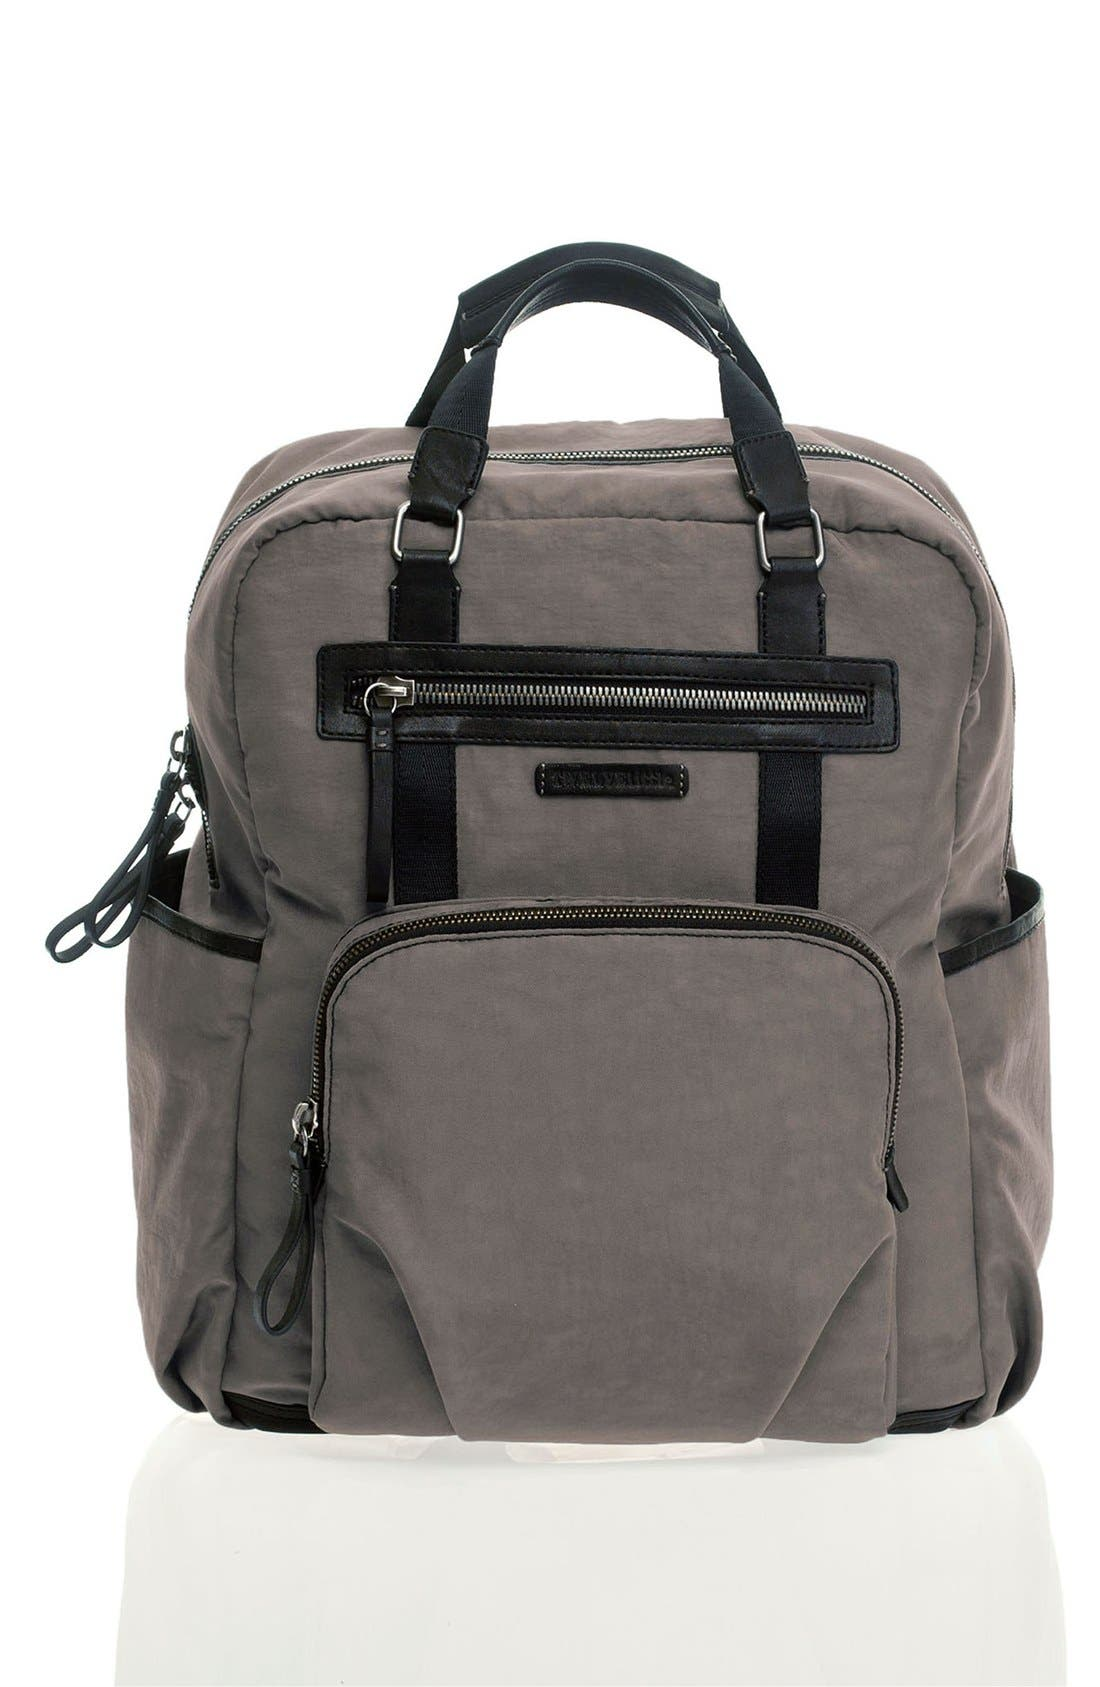 'Courage' Unisex Backpack Diaper Bag, Main, color, 020